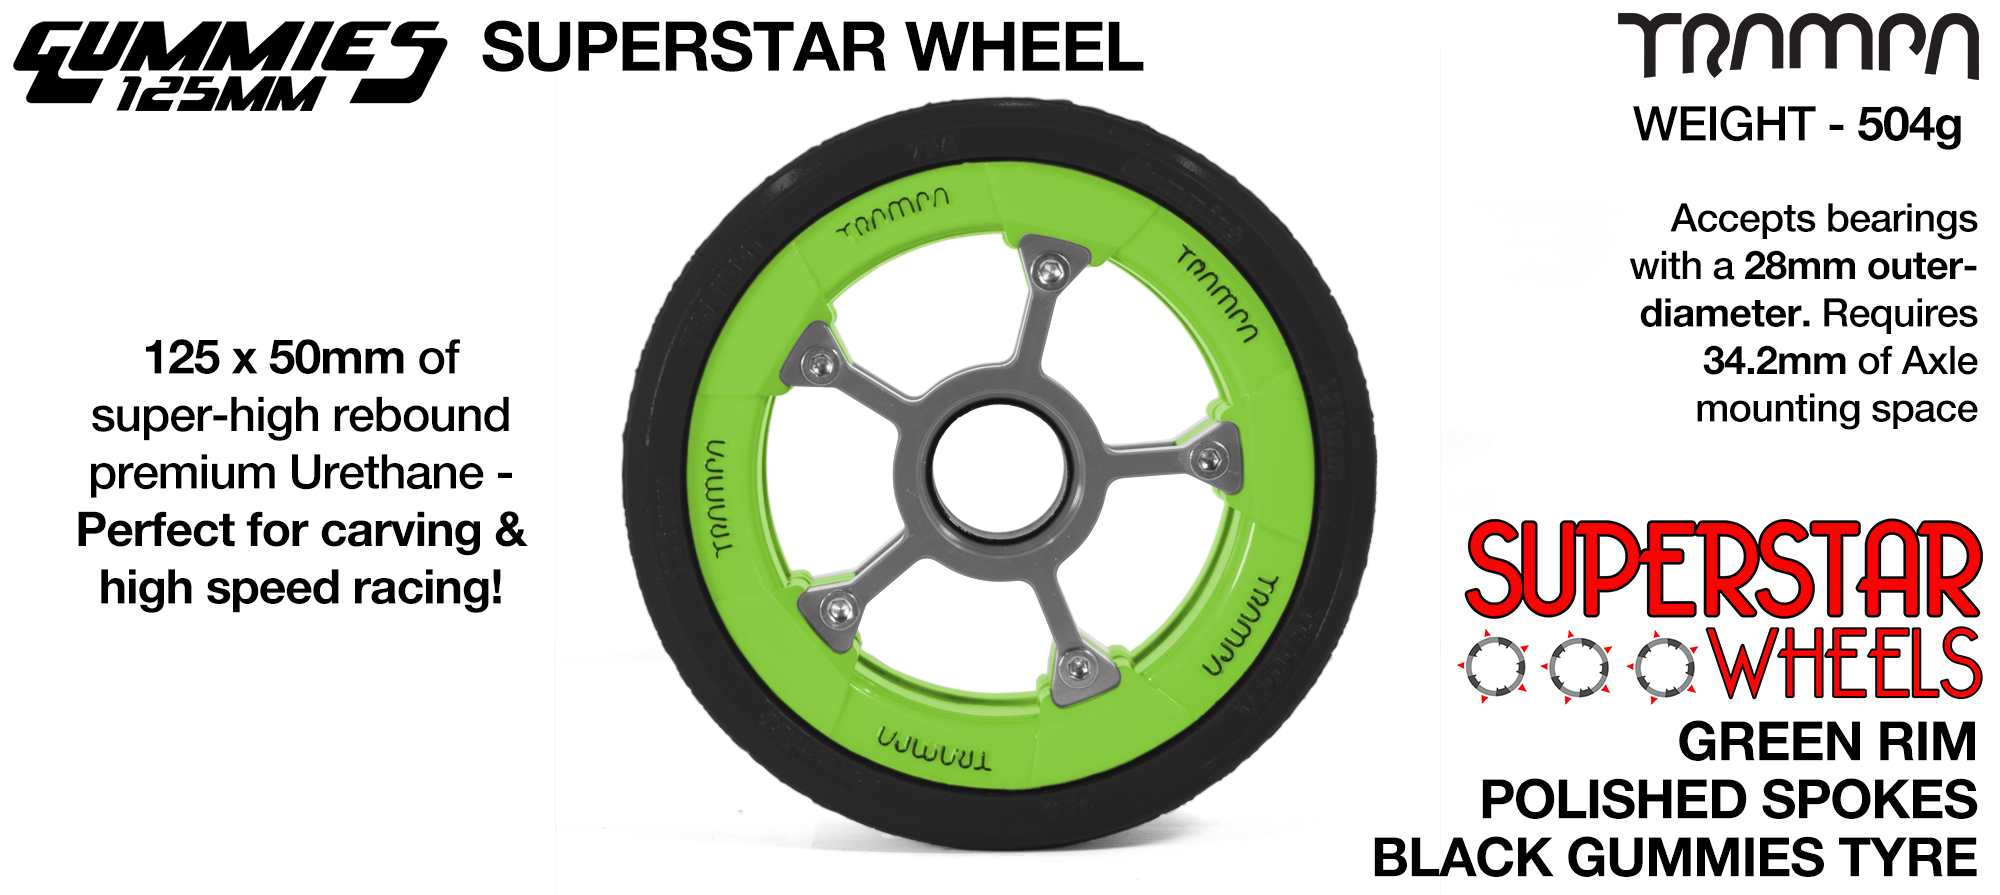 Superstar 125mm Longboard Wheels - GREEN Superstar Rim SILVER Spokes with BLACK Gummies